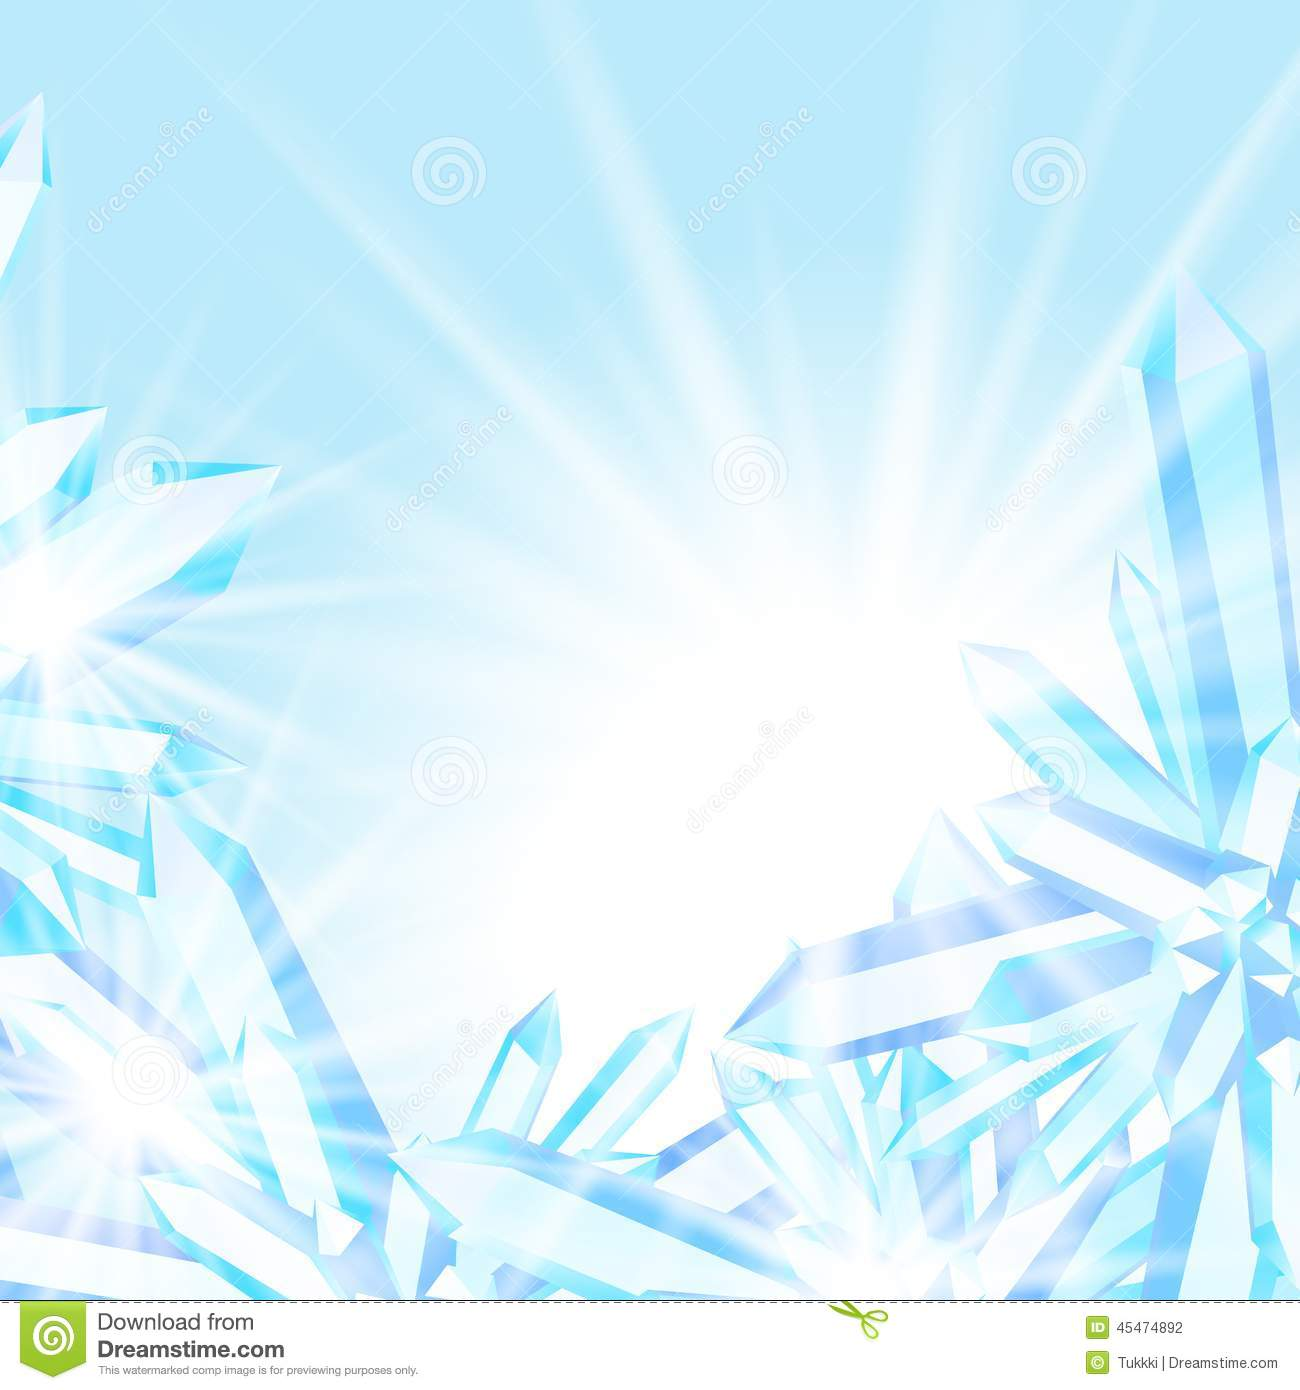 Ice Cream Background Sparking Shiny Decoration Free Vector: Sparkling Ice Crystals Stock Vector. Illustration Of